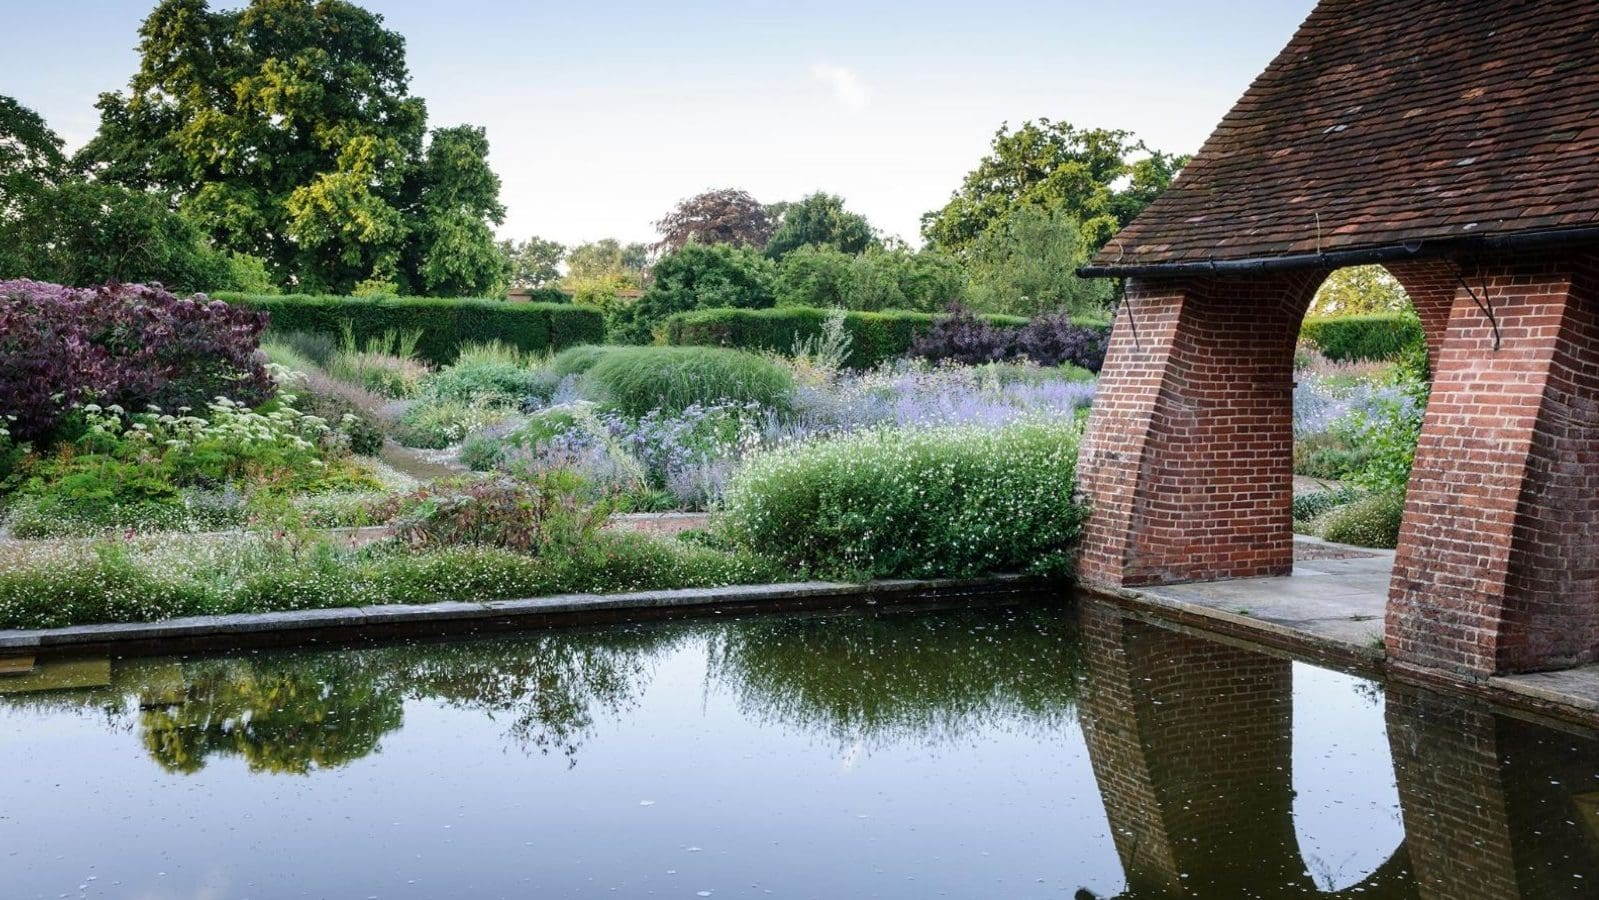 Dan Pearson: House and Garden 2019 Garden Designer of the Year